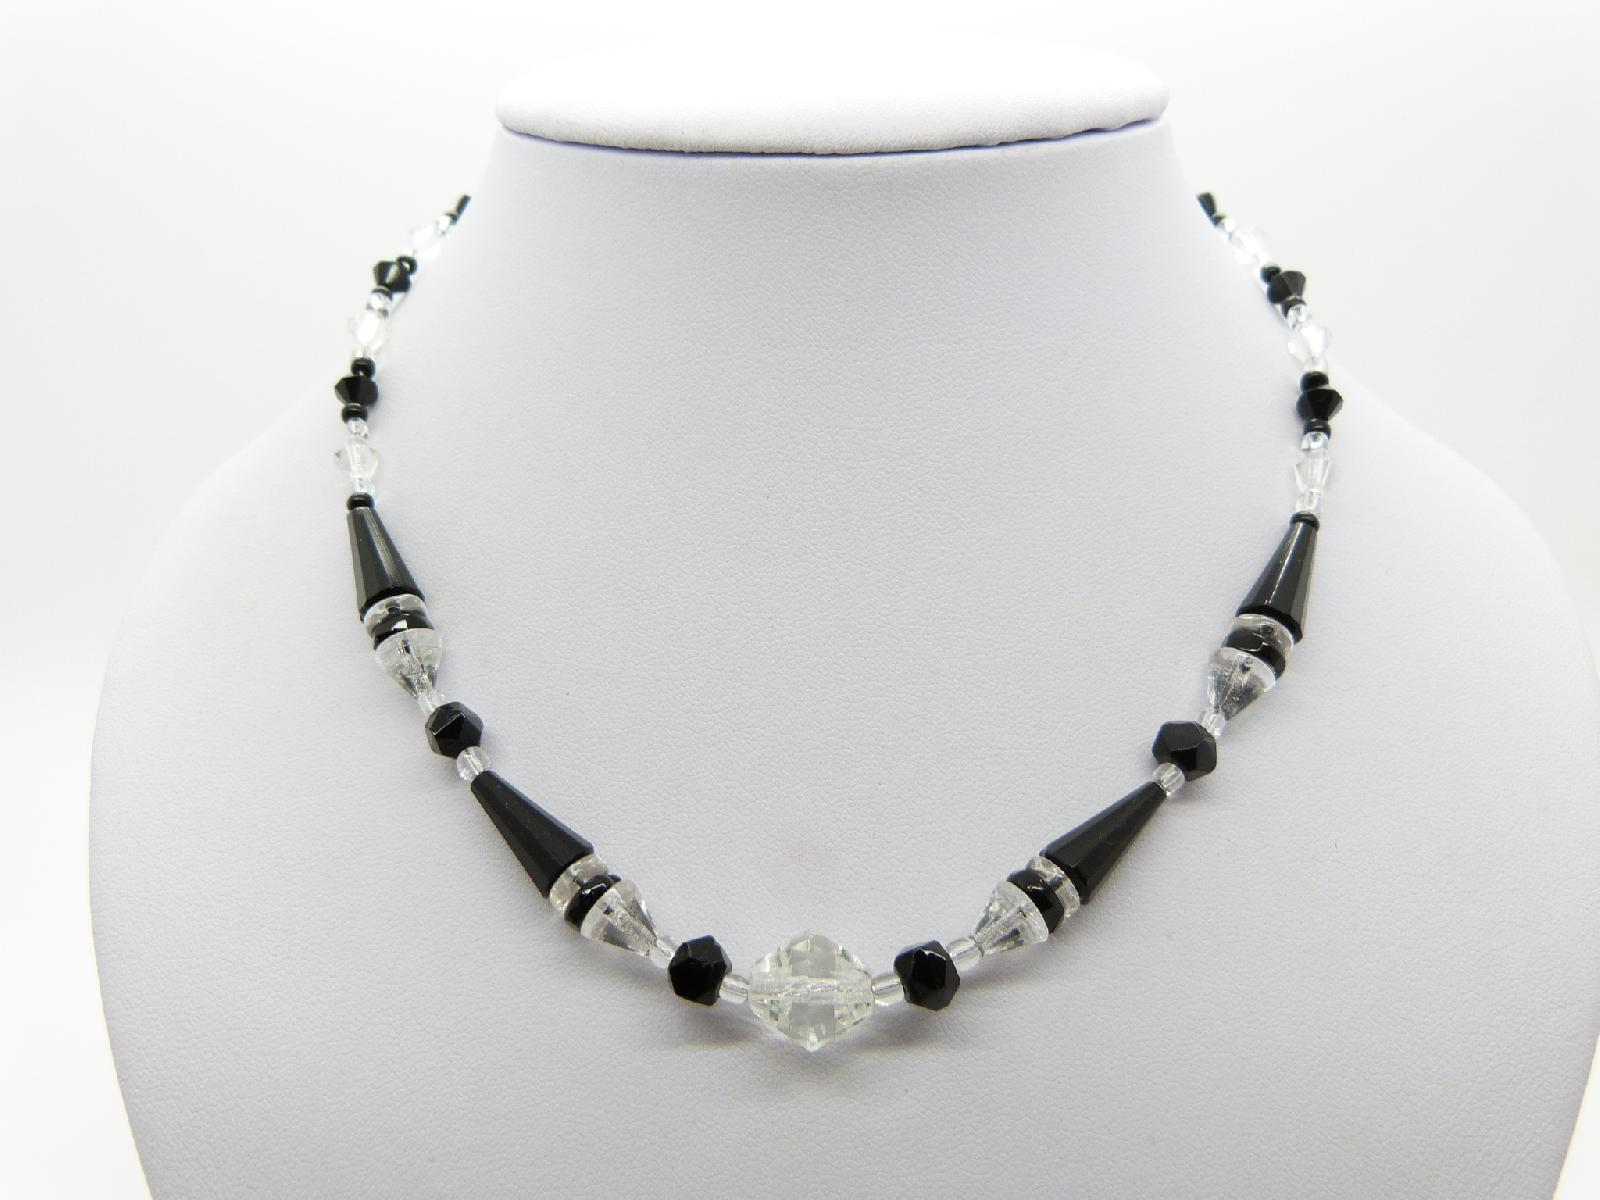 £26.00 - Vintage 30s Art Deco Black and Clear Crystal Glass Geometric Bead Necklace 44cms